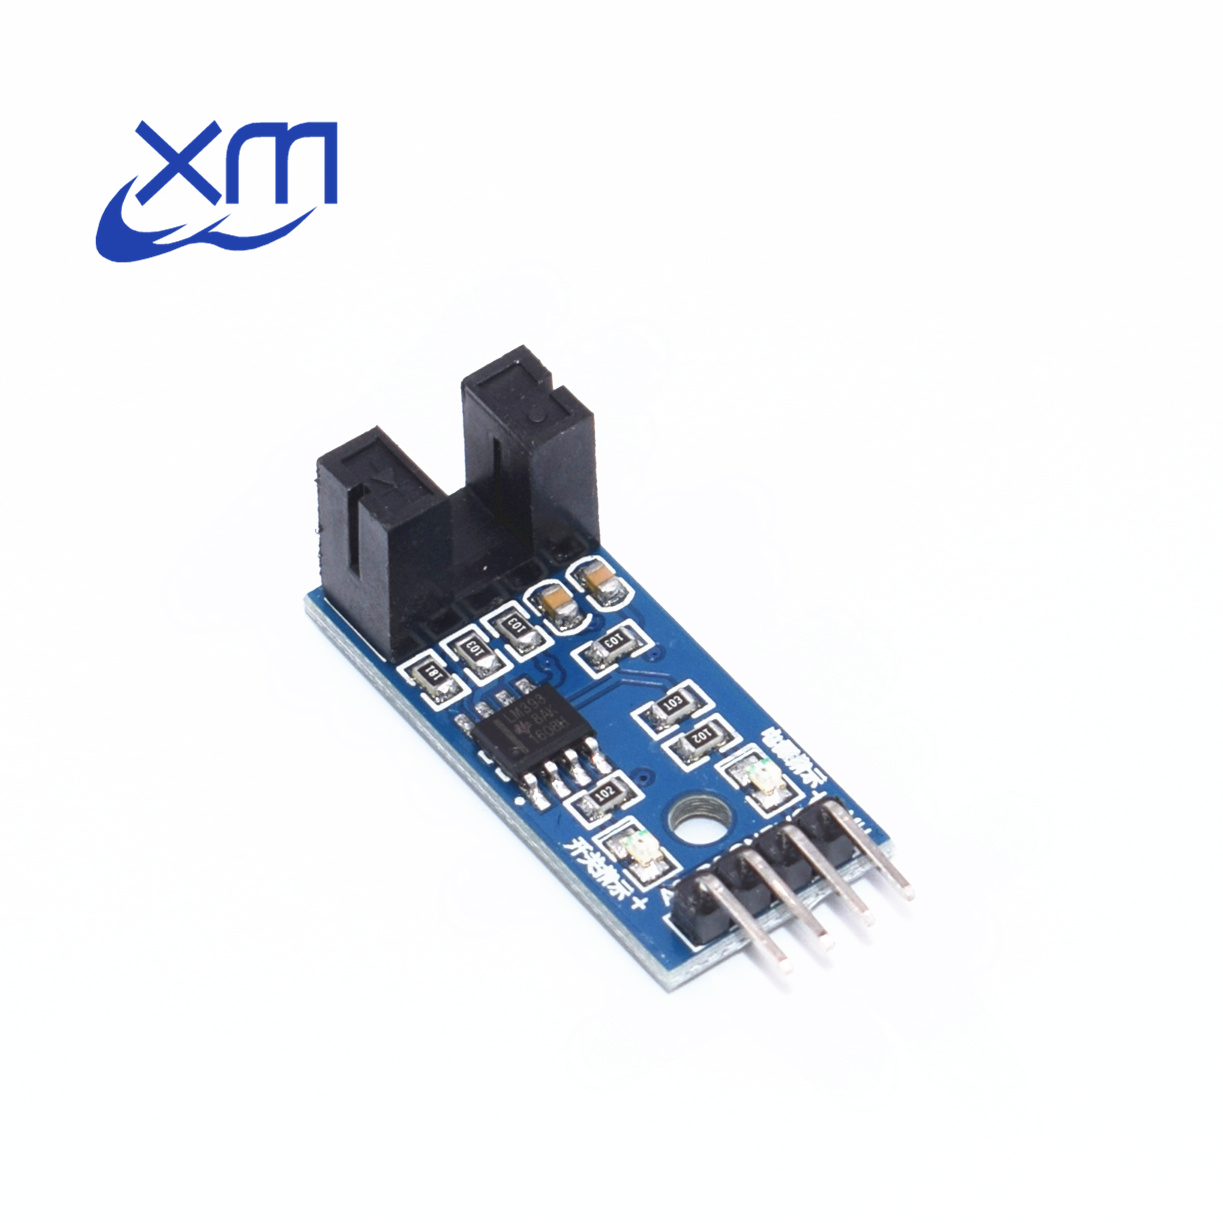 10pcs IR Infrared Slotted Optical Speed Measuring Sensor Optocoupler Module For Motor Test I32